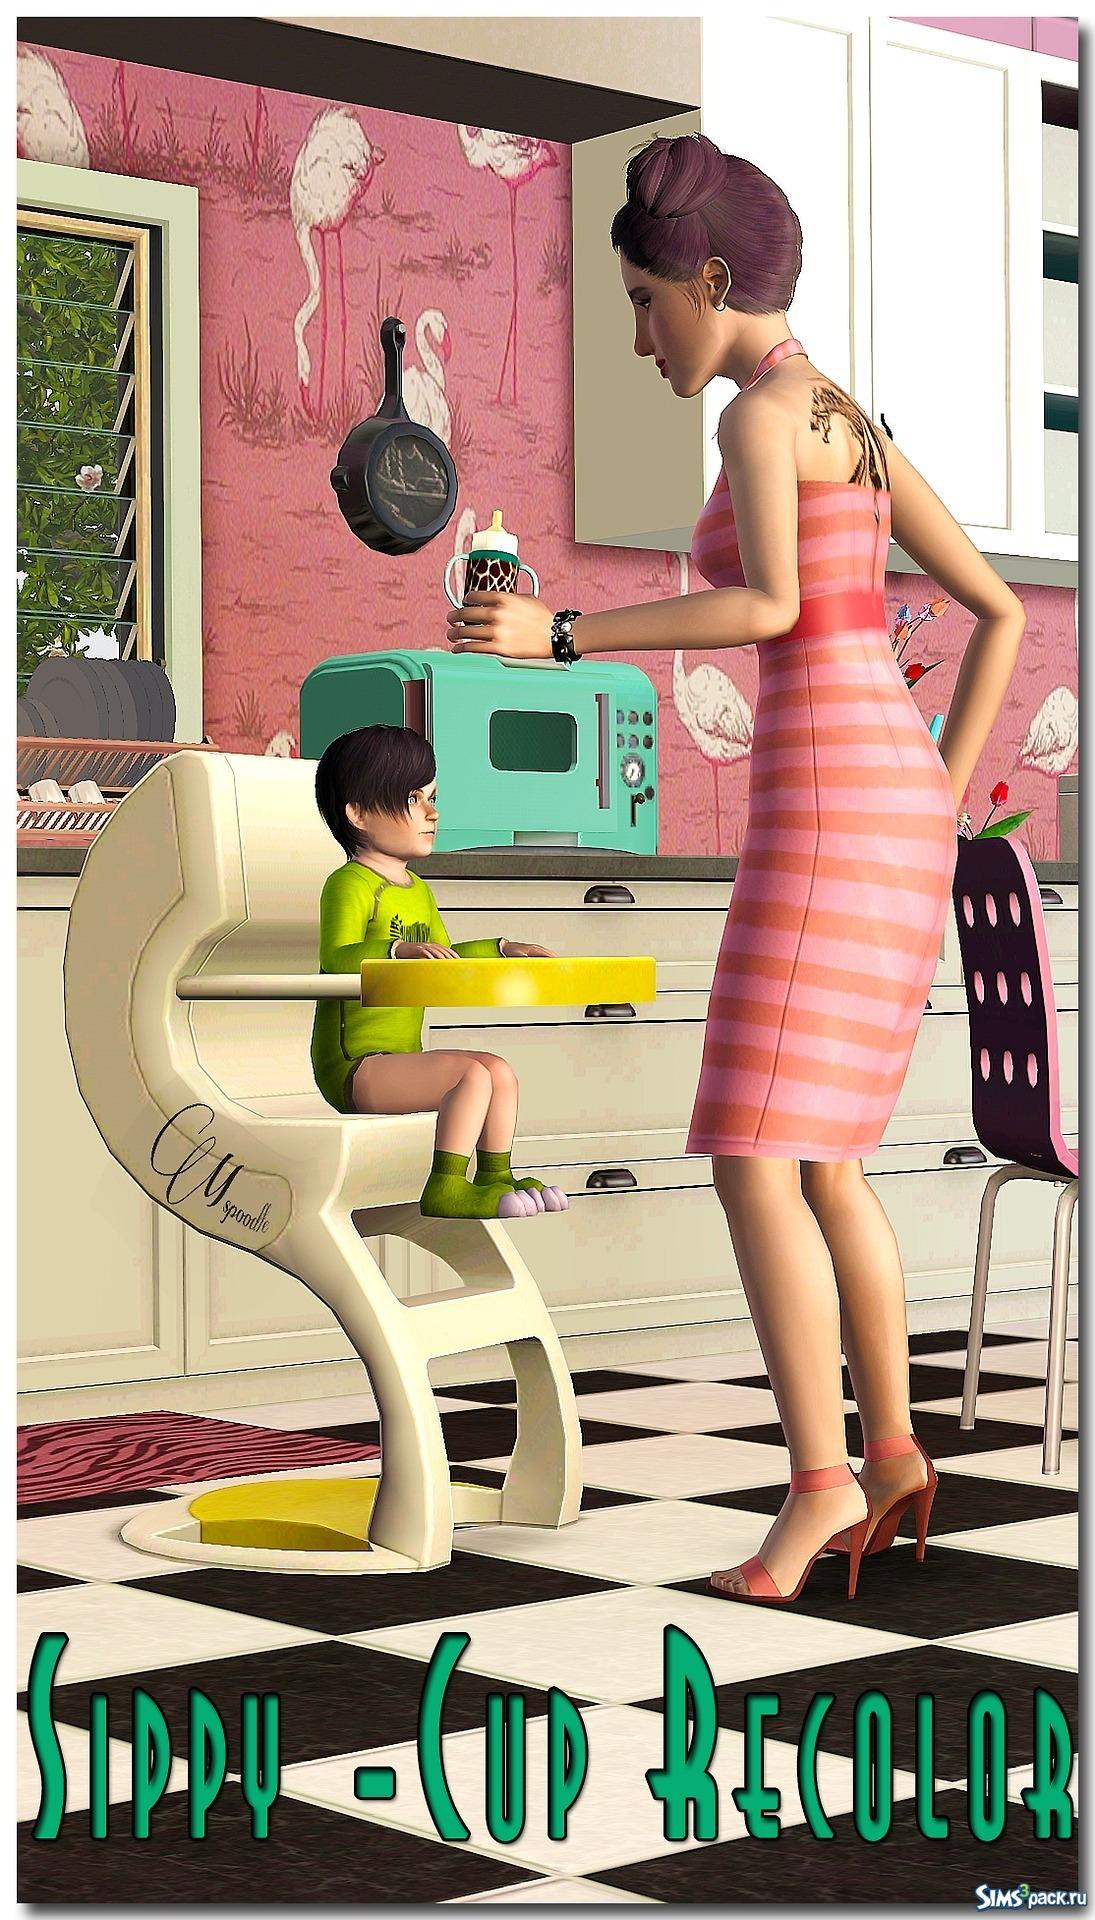 How use havesexmod package in sims cartoon pictures